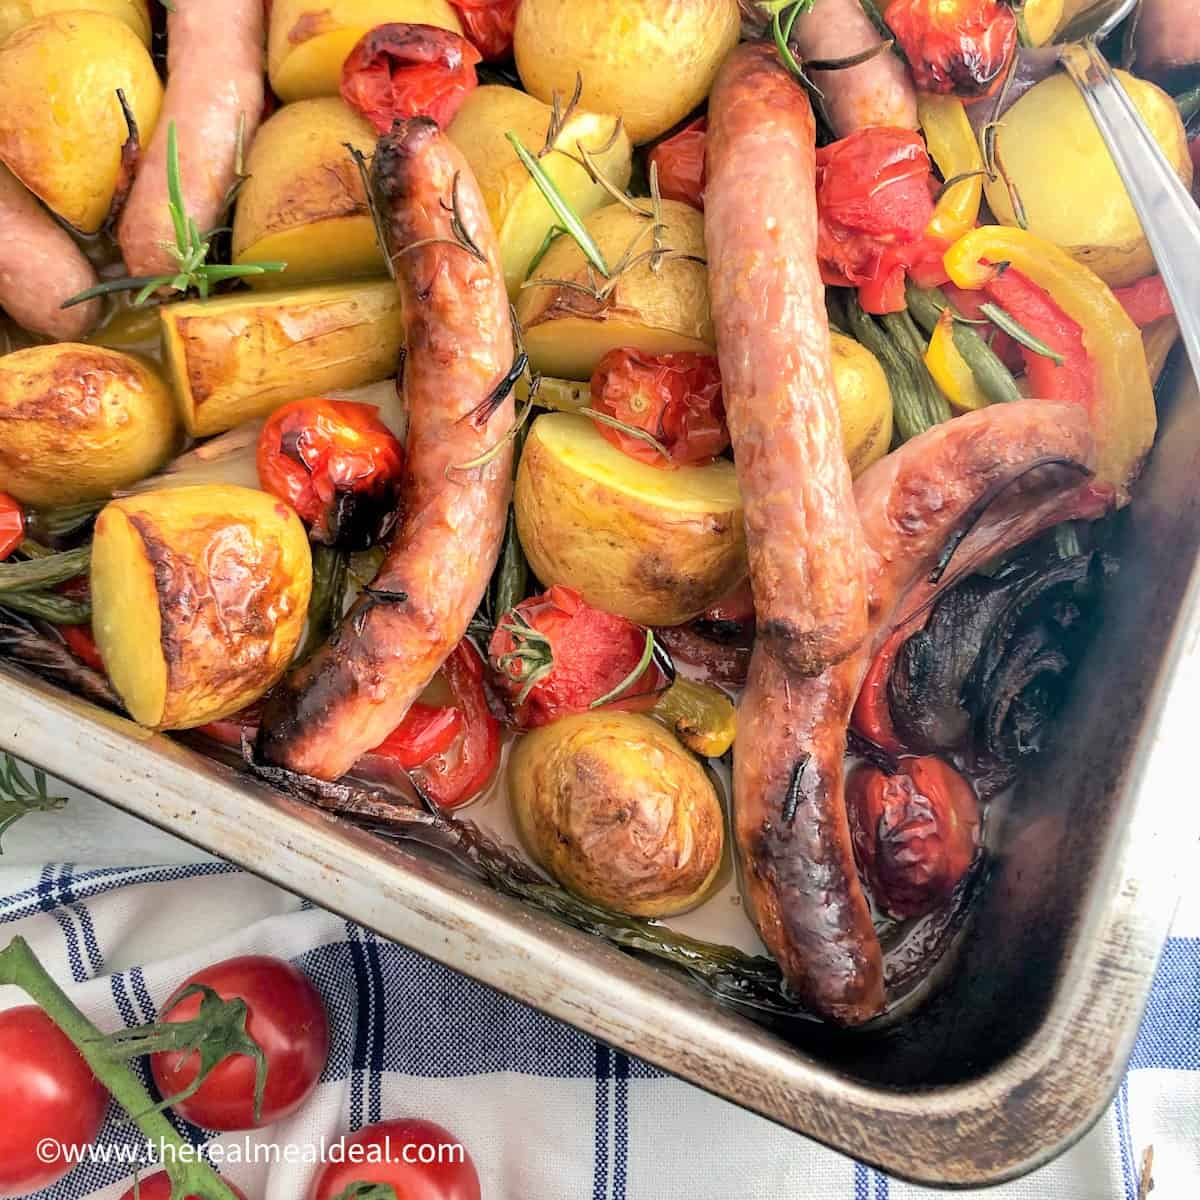 roasted new potatoes green beans, tomatoes and peppers in tray with sausages and rosemary